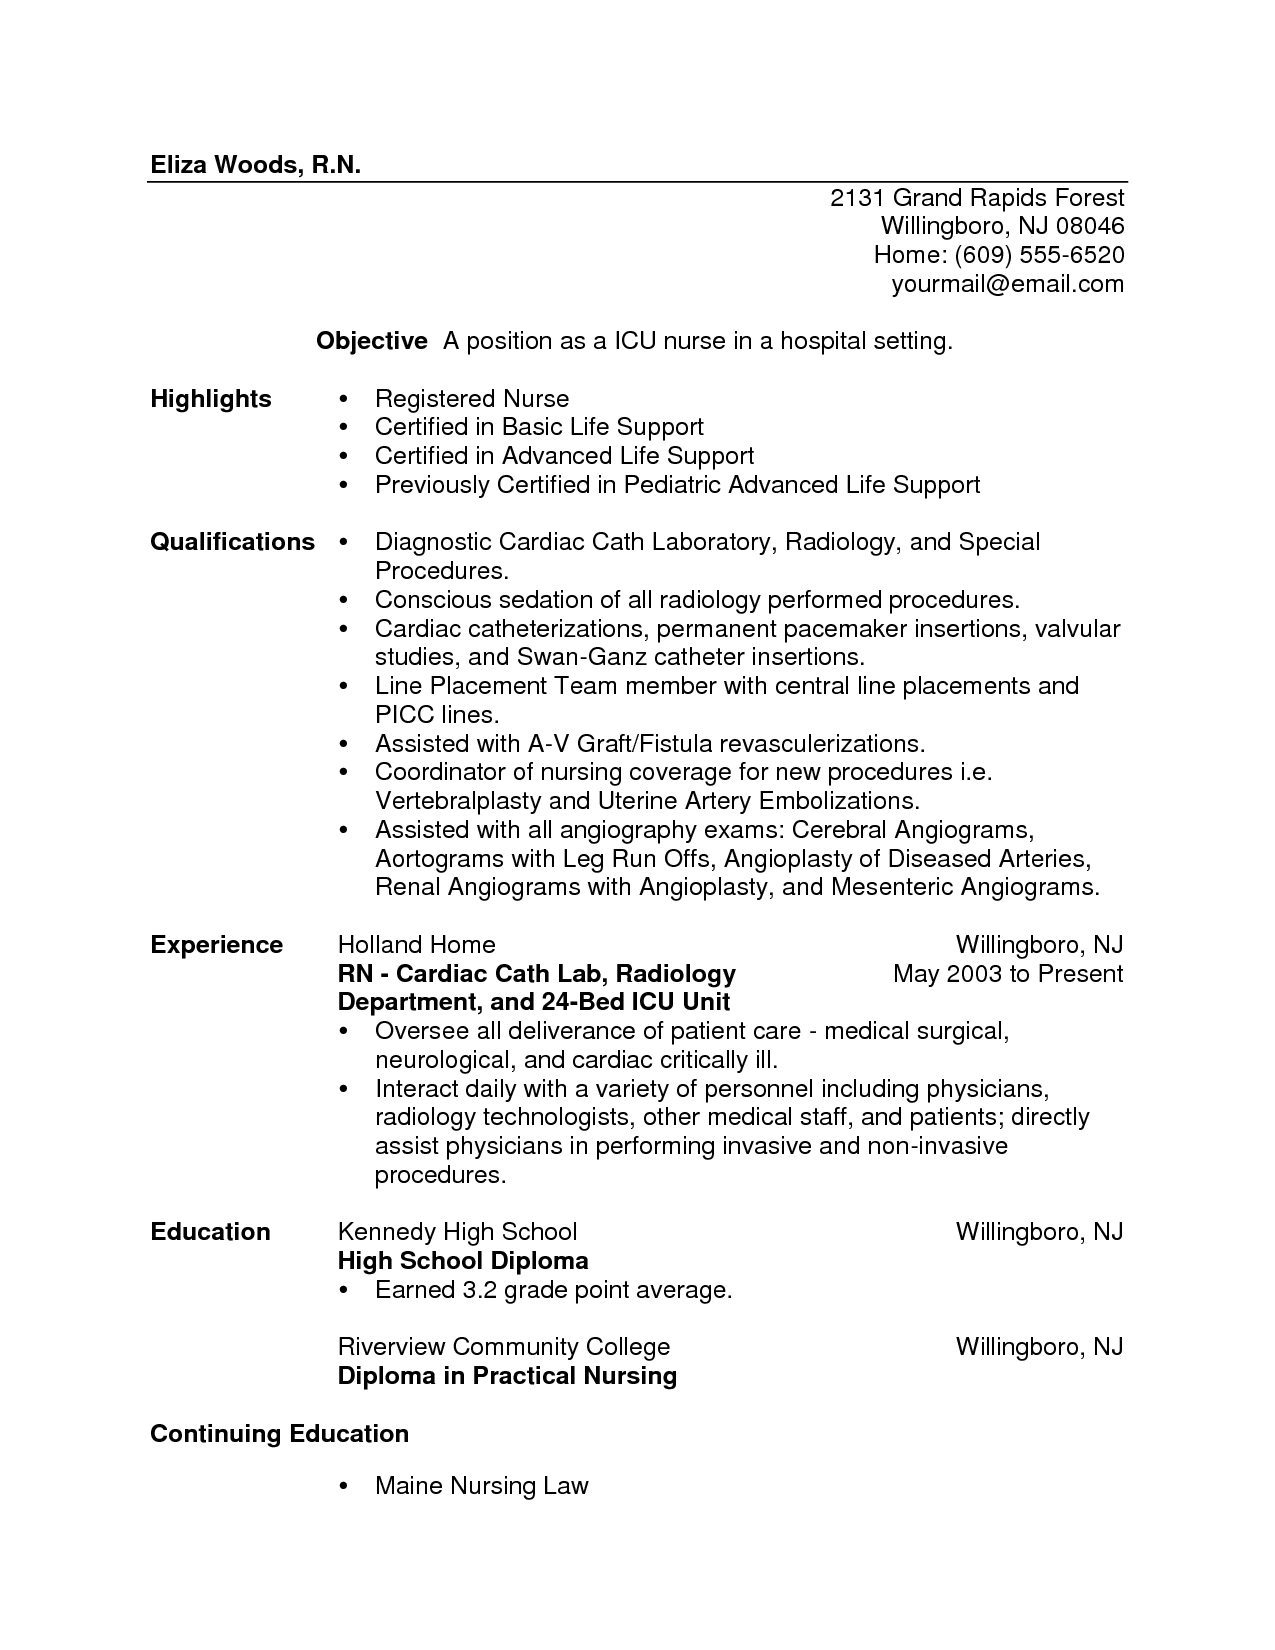 view nursing resumes sample customer service resume view nursing resumes nursing resume tips and samples to nuture your career icu nursing resume template